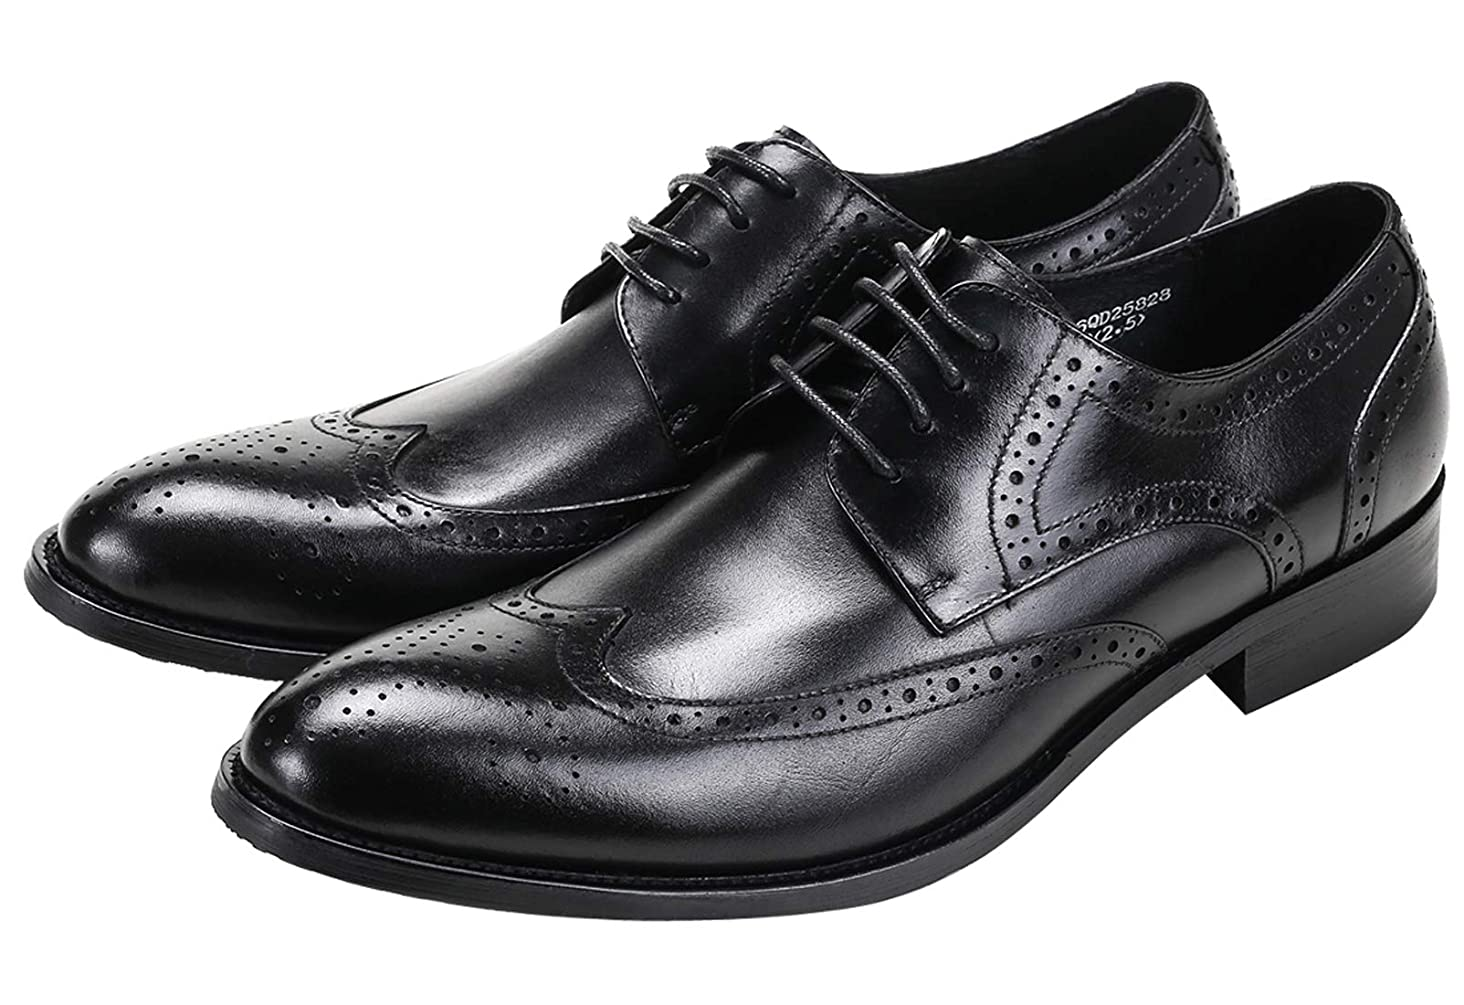 Mens Dress Shoes Wingtip Brogue Oxford for Men Classic Formal Leather Lace Up Derby Shoes